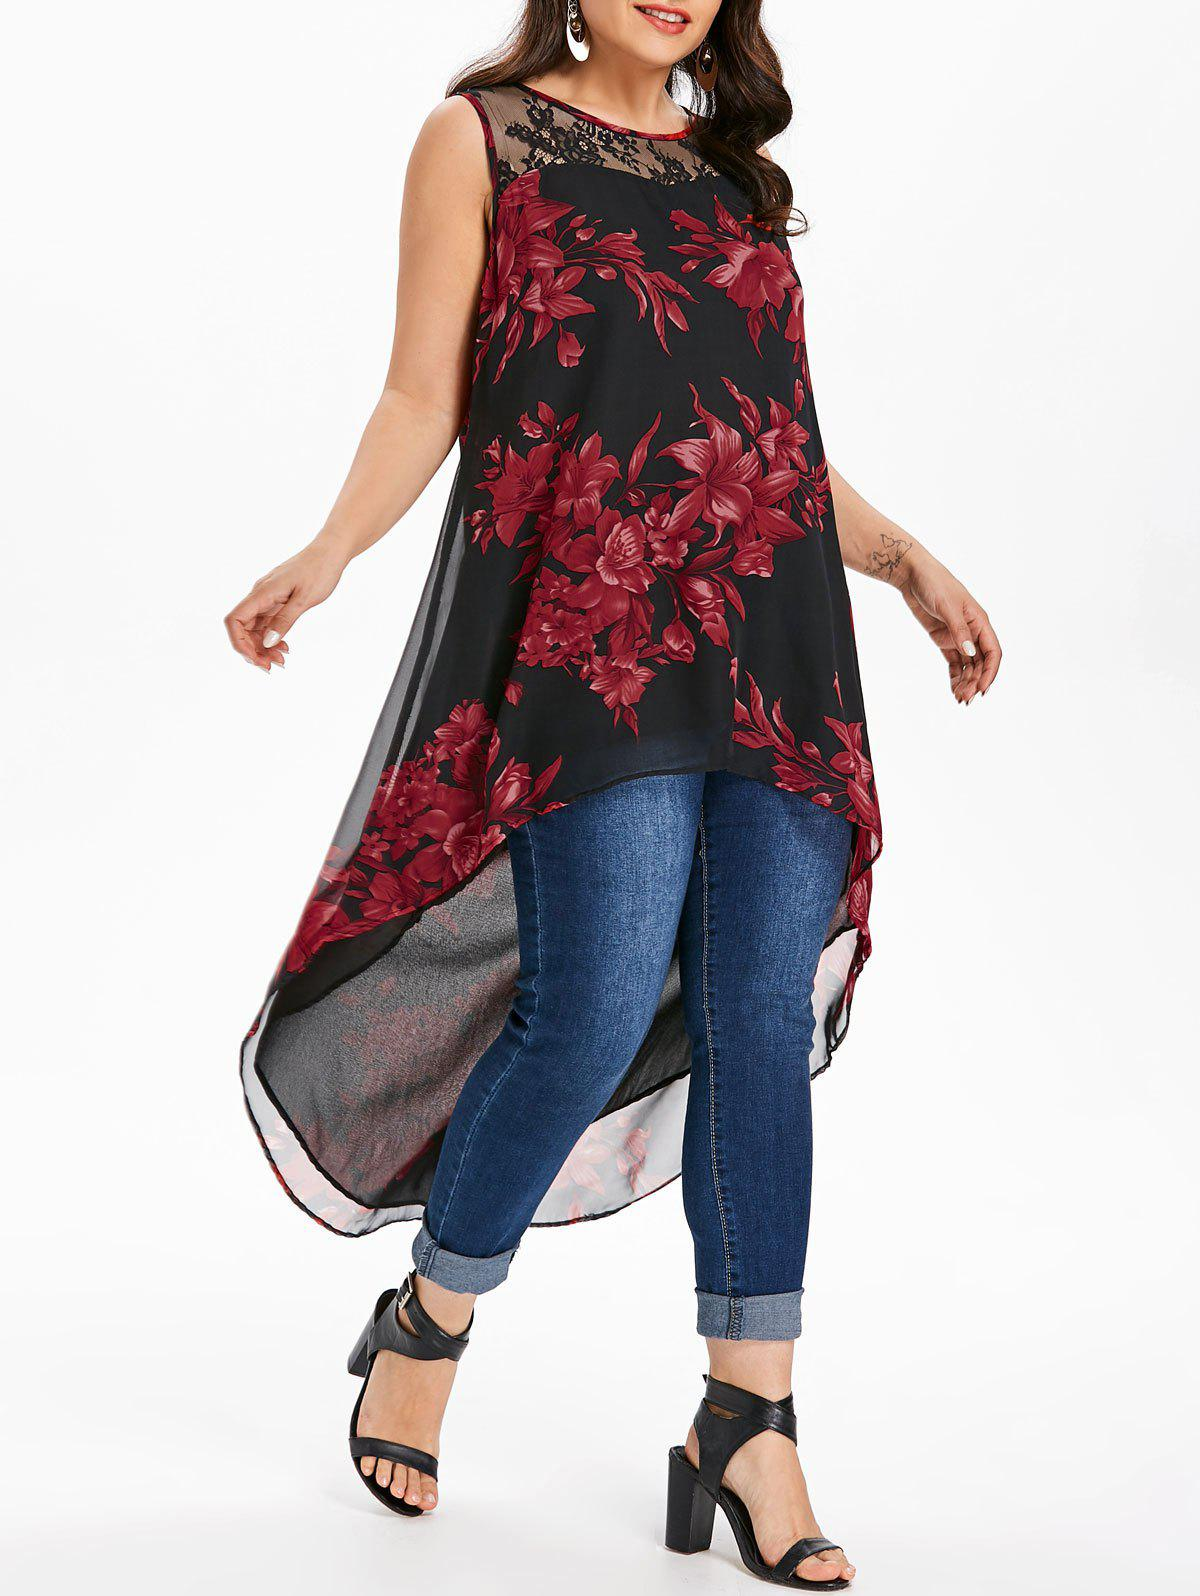 Plus Size Flower High Low Blouse alfani new black women s size small s mesh back high low ribbed blouse $59 259